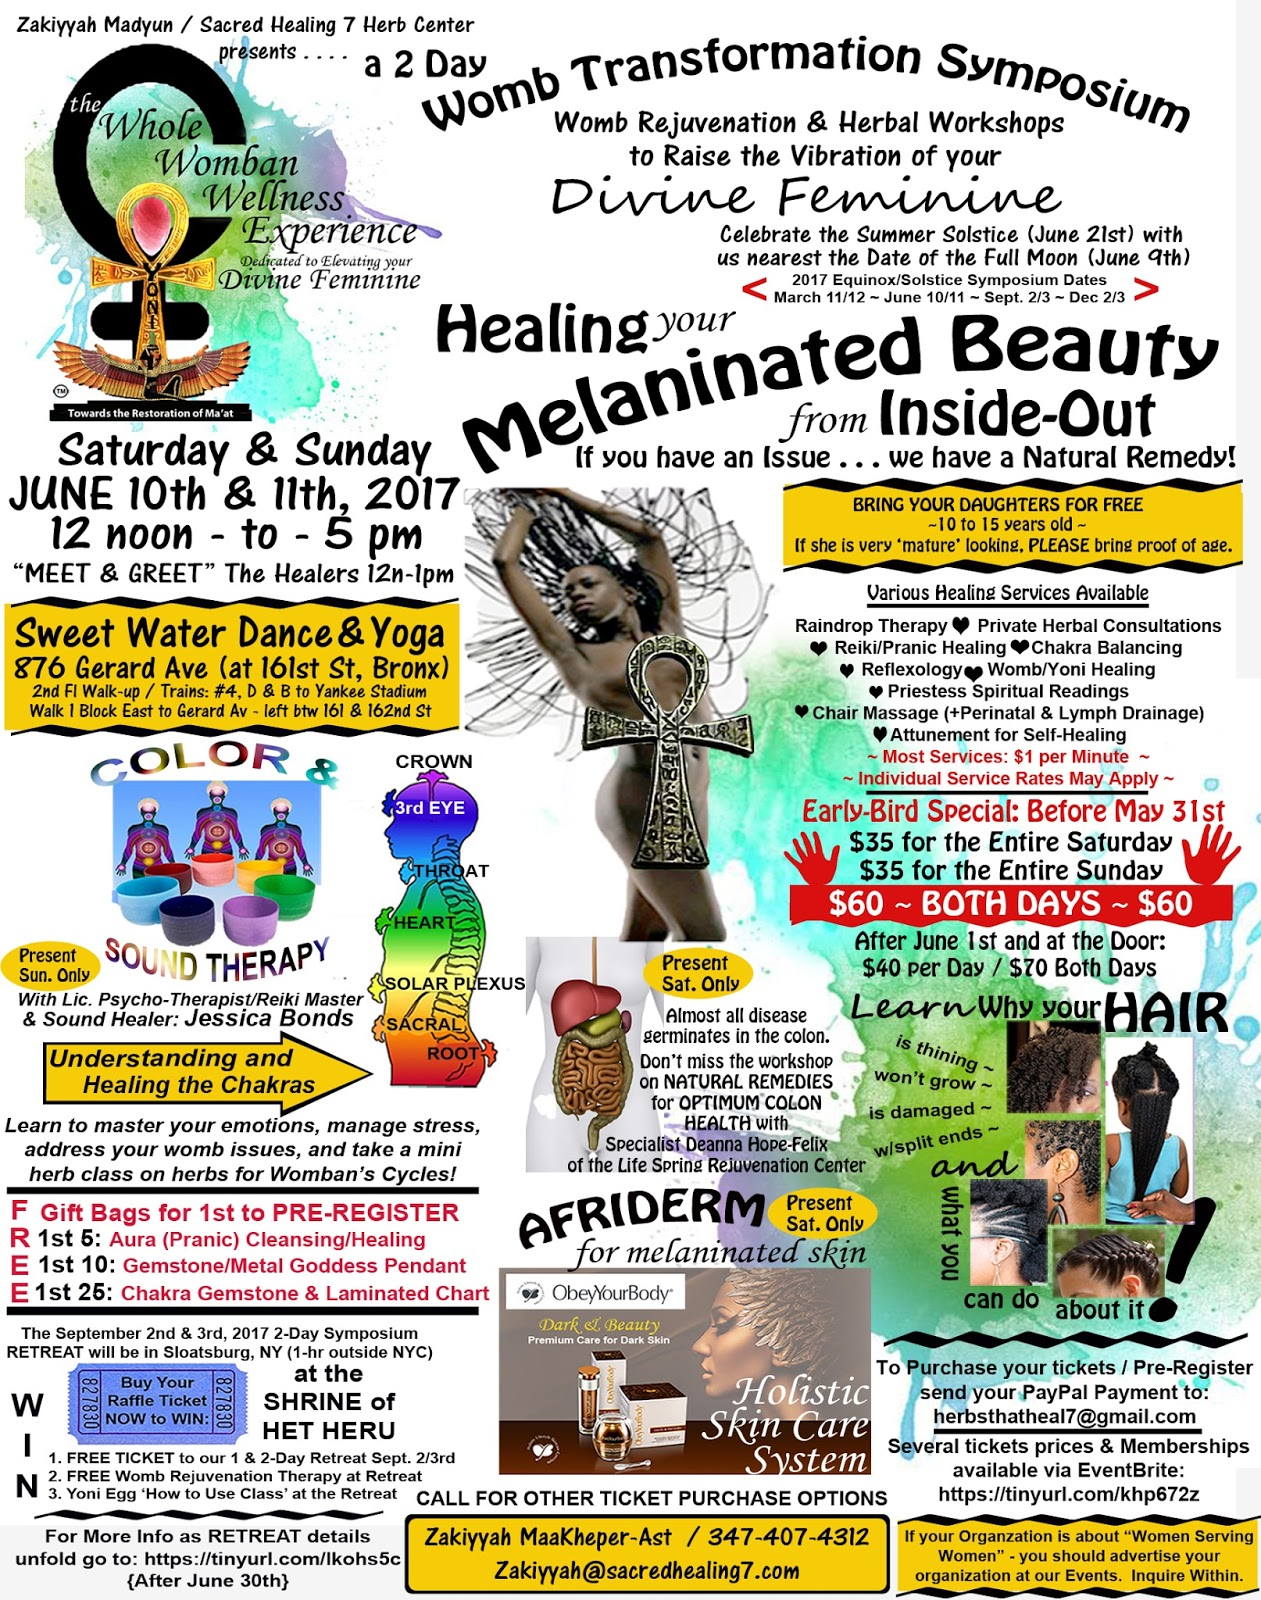 Center for holistic herbal therapy - We Re Going To Have A Holistic Skin Care Specialist For Melanin Skin A Hair Care Specialist For The Melanin Hair Type A Master Herbalist To Do A Mini Herb